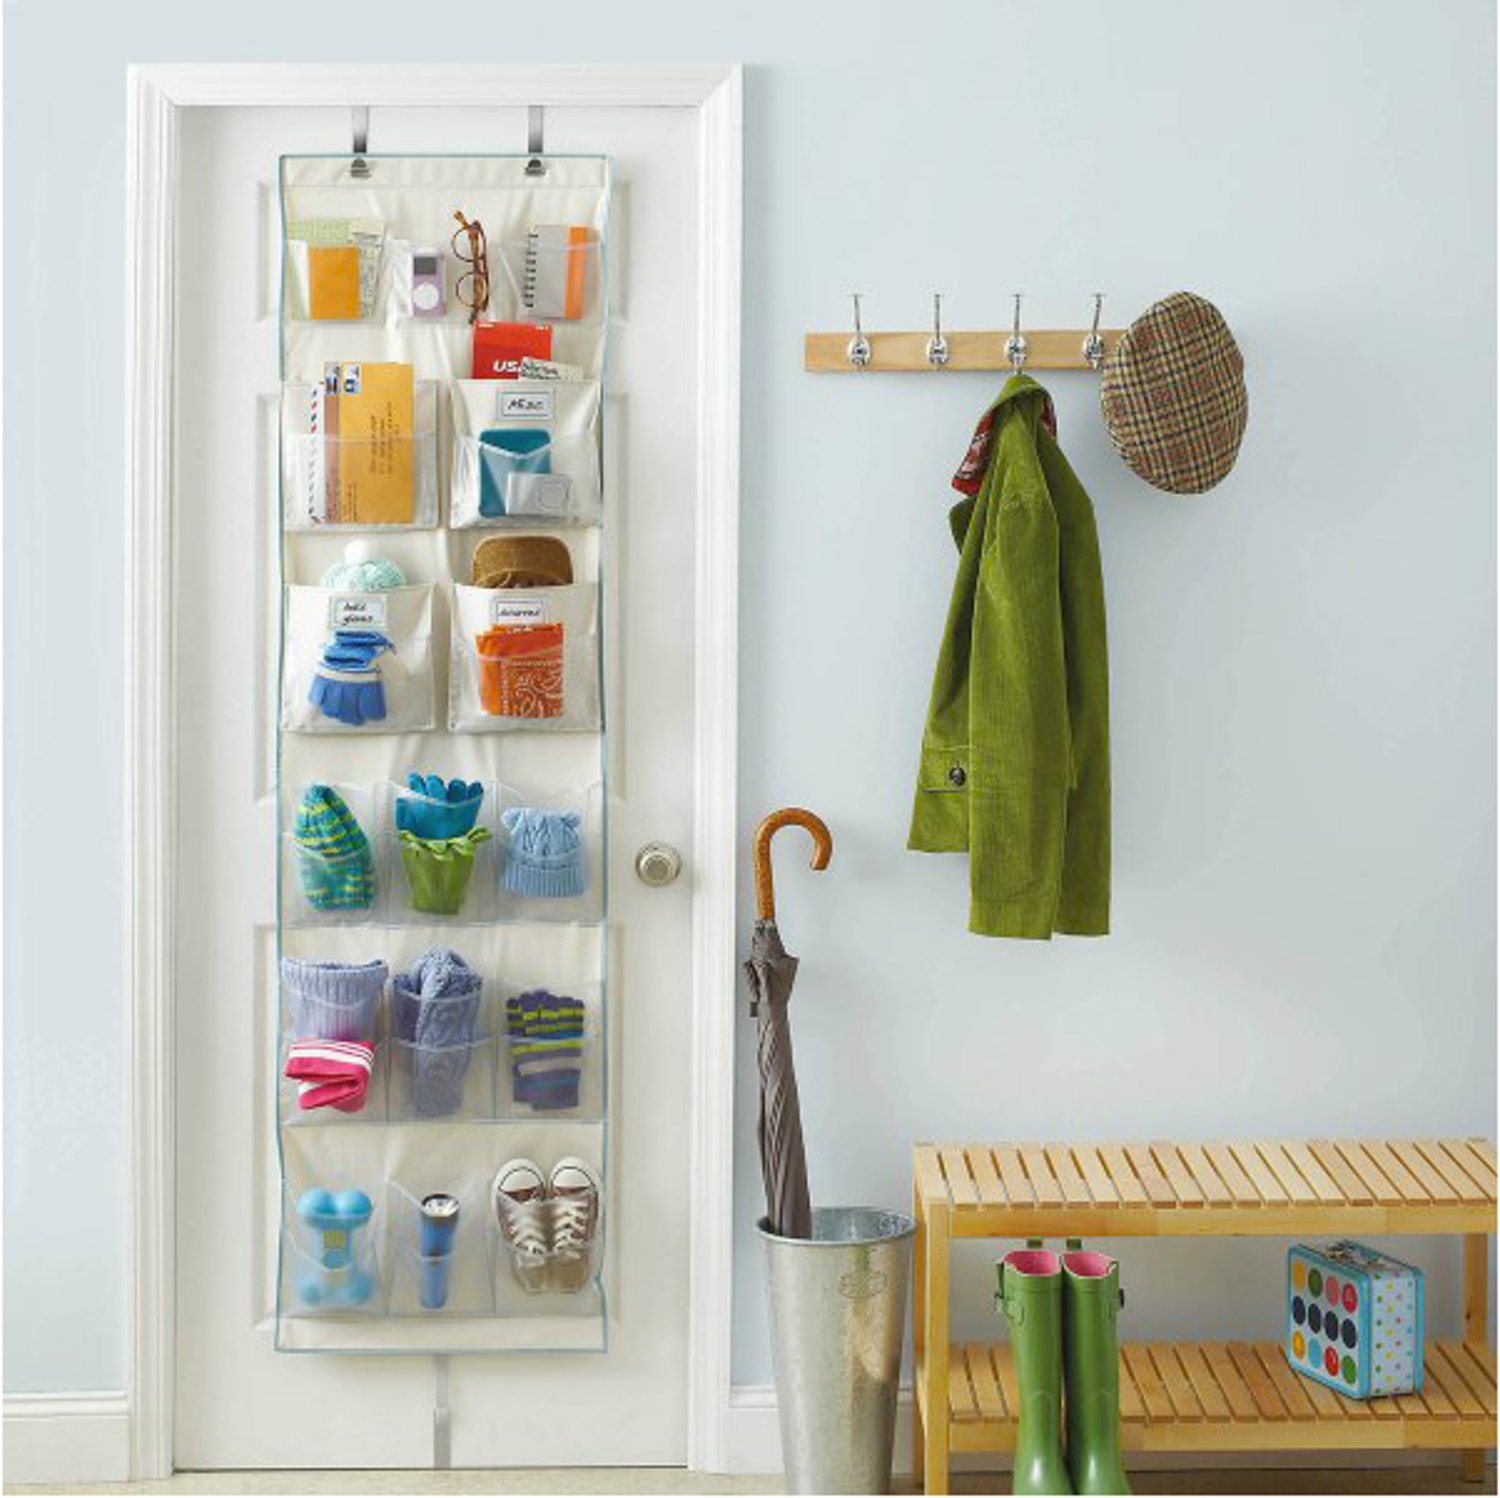 Small Bedroom Storage 10 Over the Door Organizers Under $50